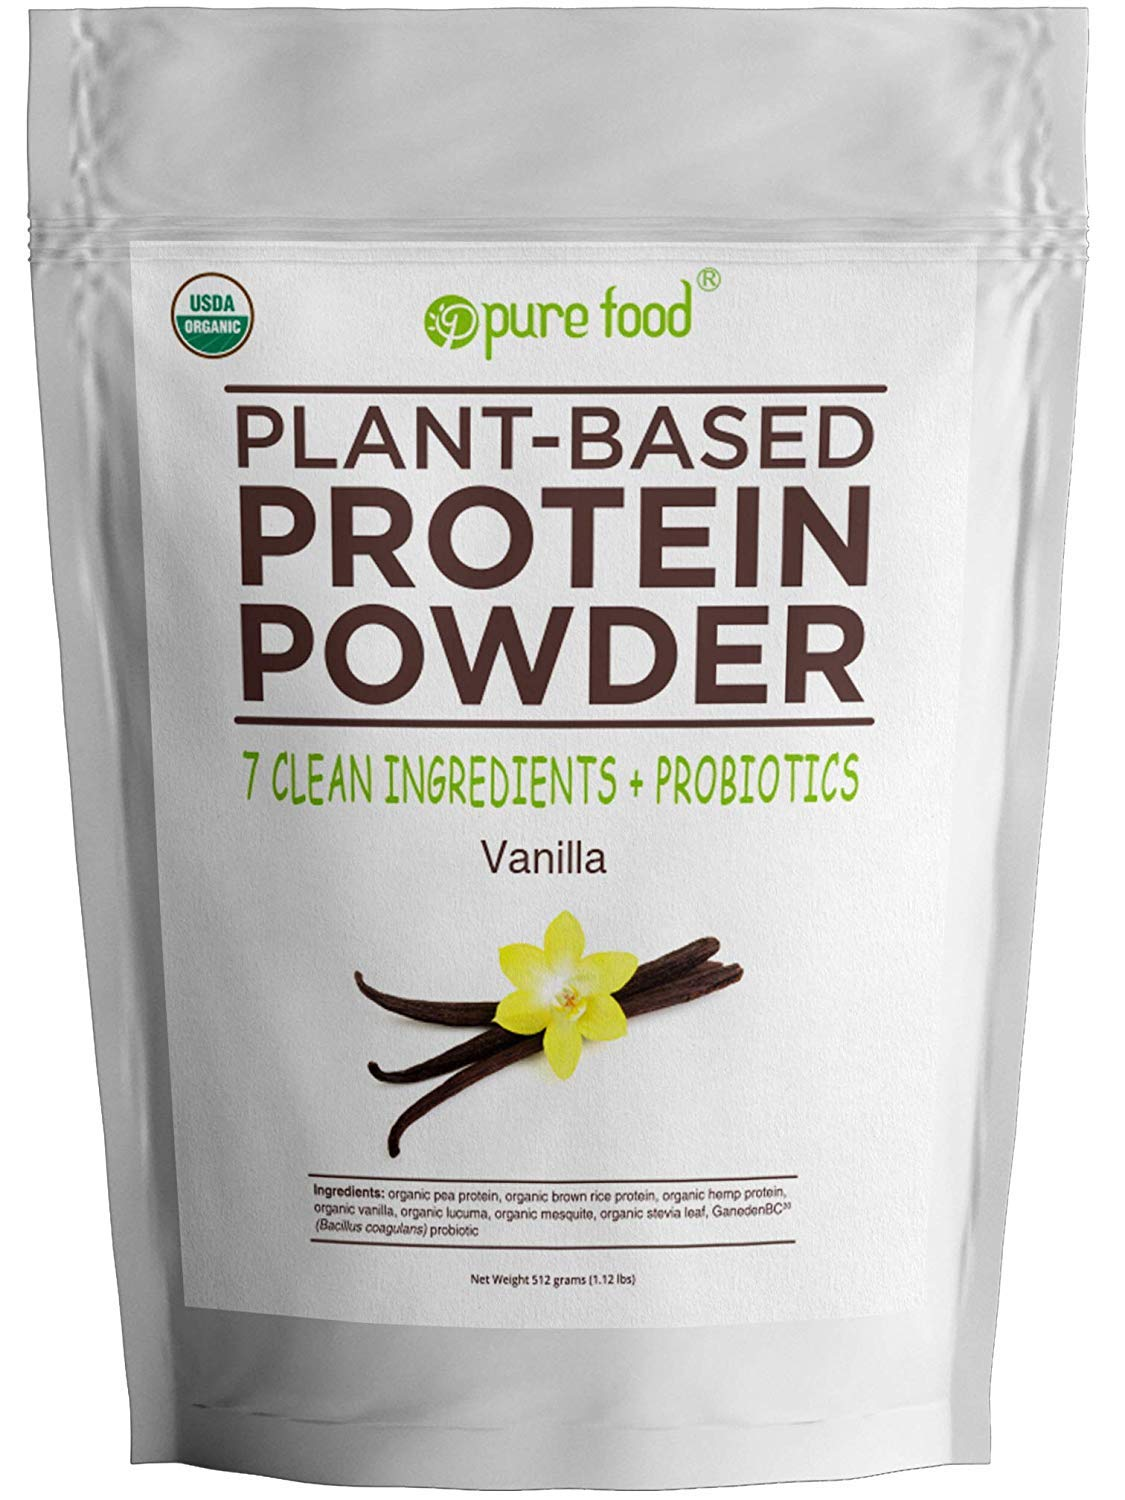 Pure Food: Plant Based Protein Powder with Probiotics | Organic, All Natural, Vegan Whole Food Ingredients with No Additives | Gluten, Dairy, Soy Free, Keto Friendly | Vanilla Bean, 512 Gram Bag